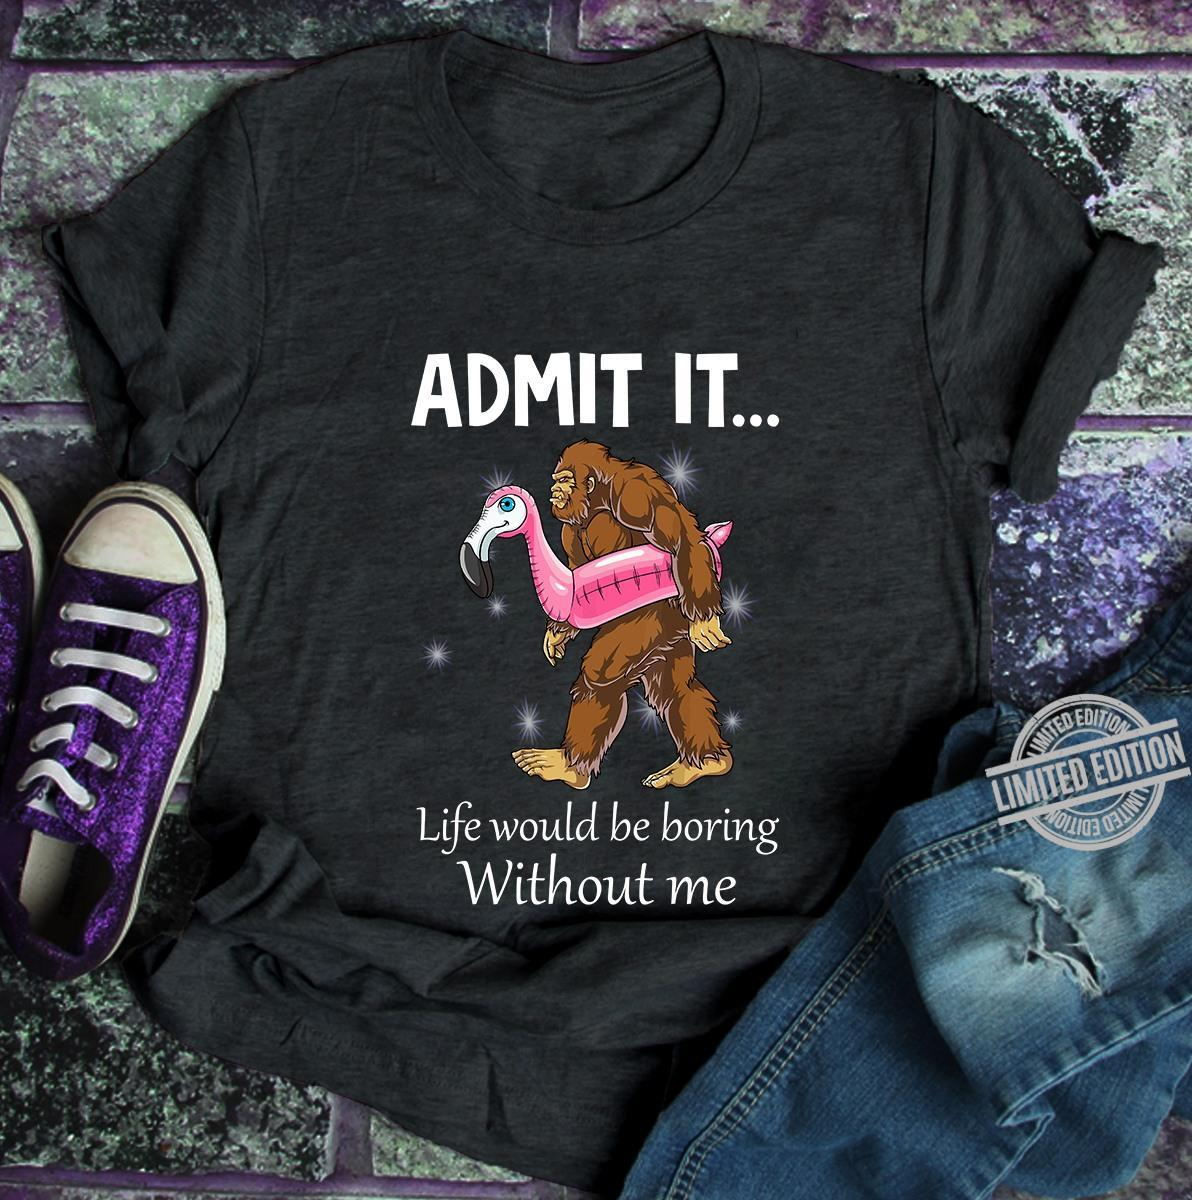 Admit It Life Would Be Boring Without Me SHirt